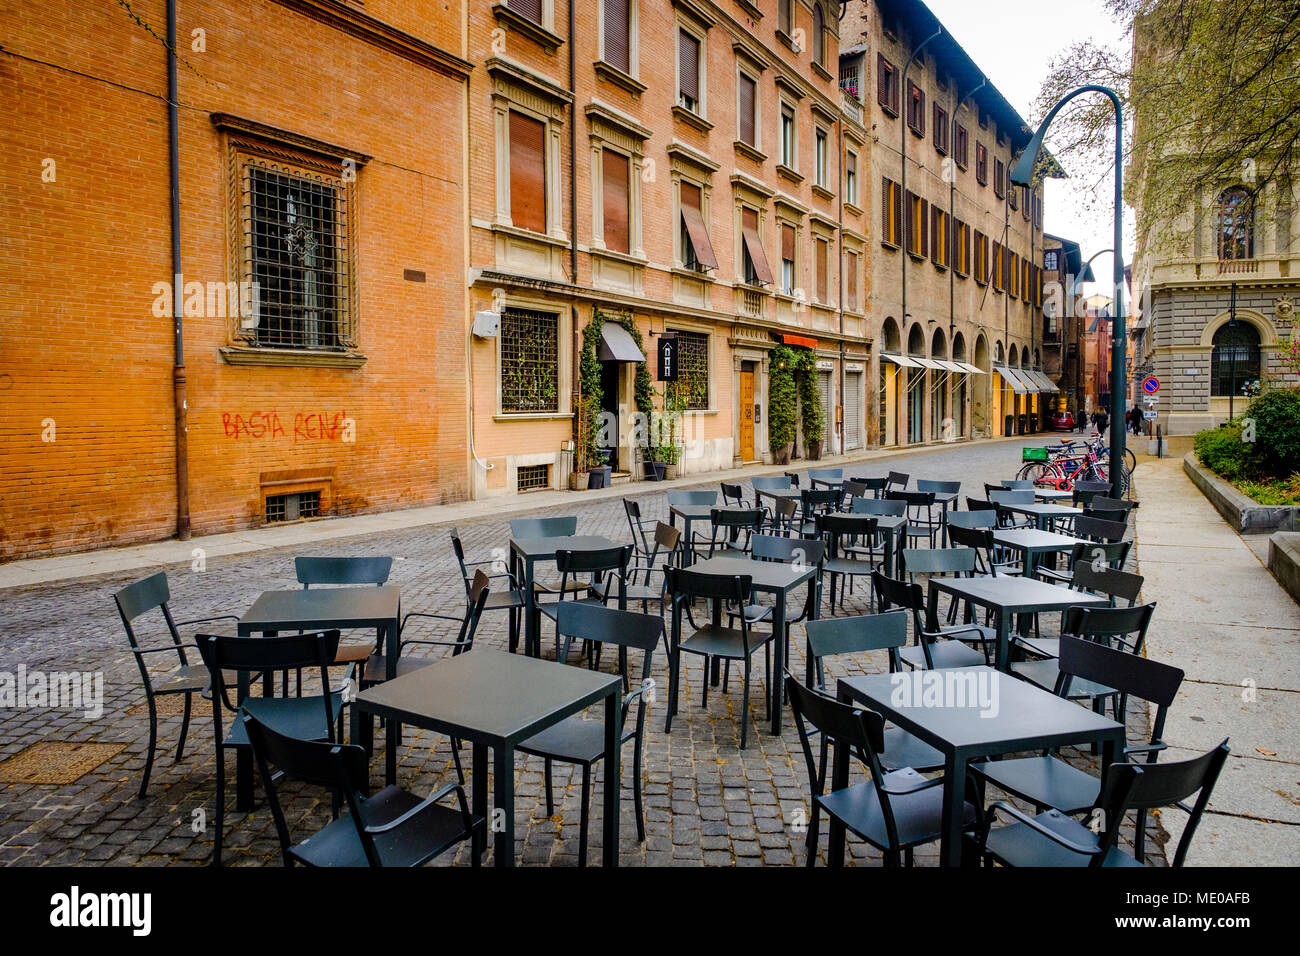 Early morning and empty tables and chairs in the Piazza Minghetti, Bologna, Italy - Stock Image